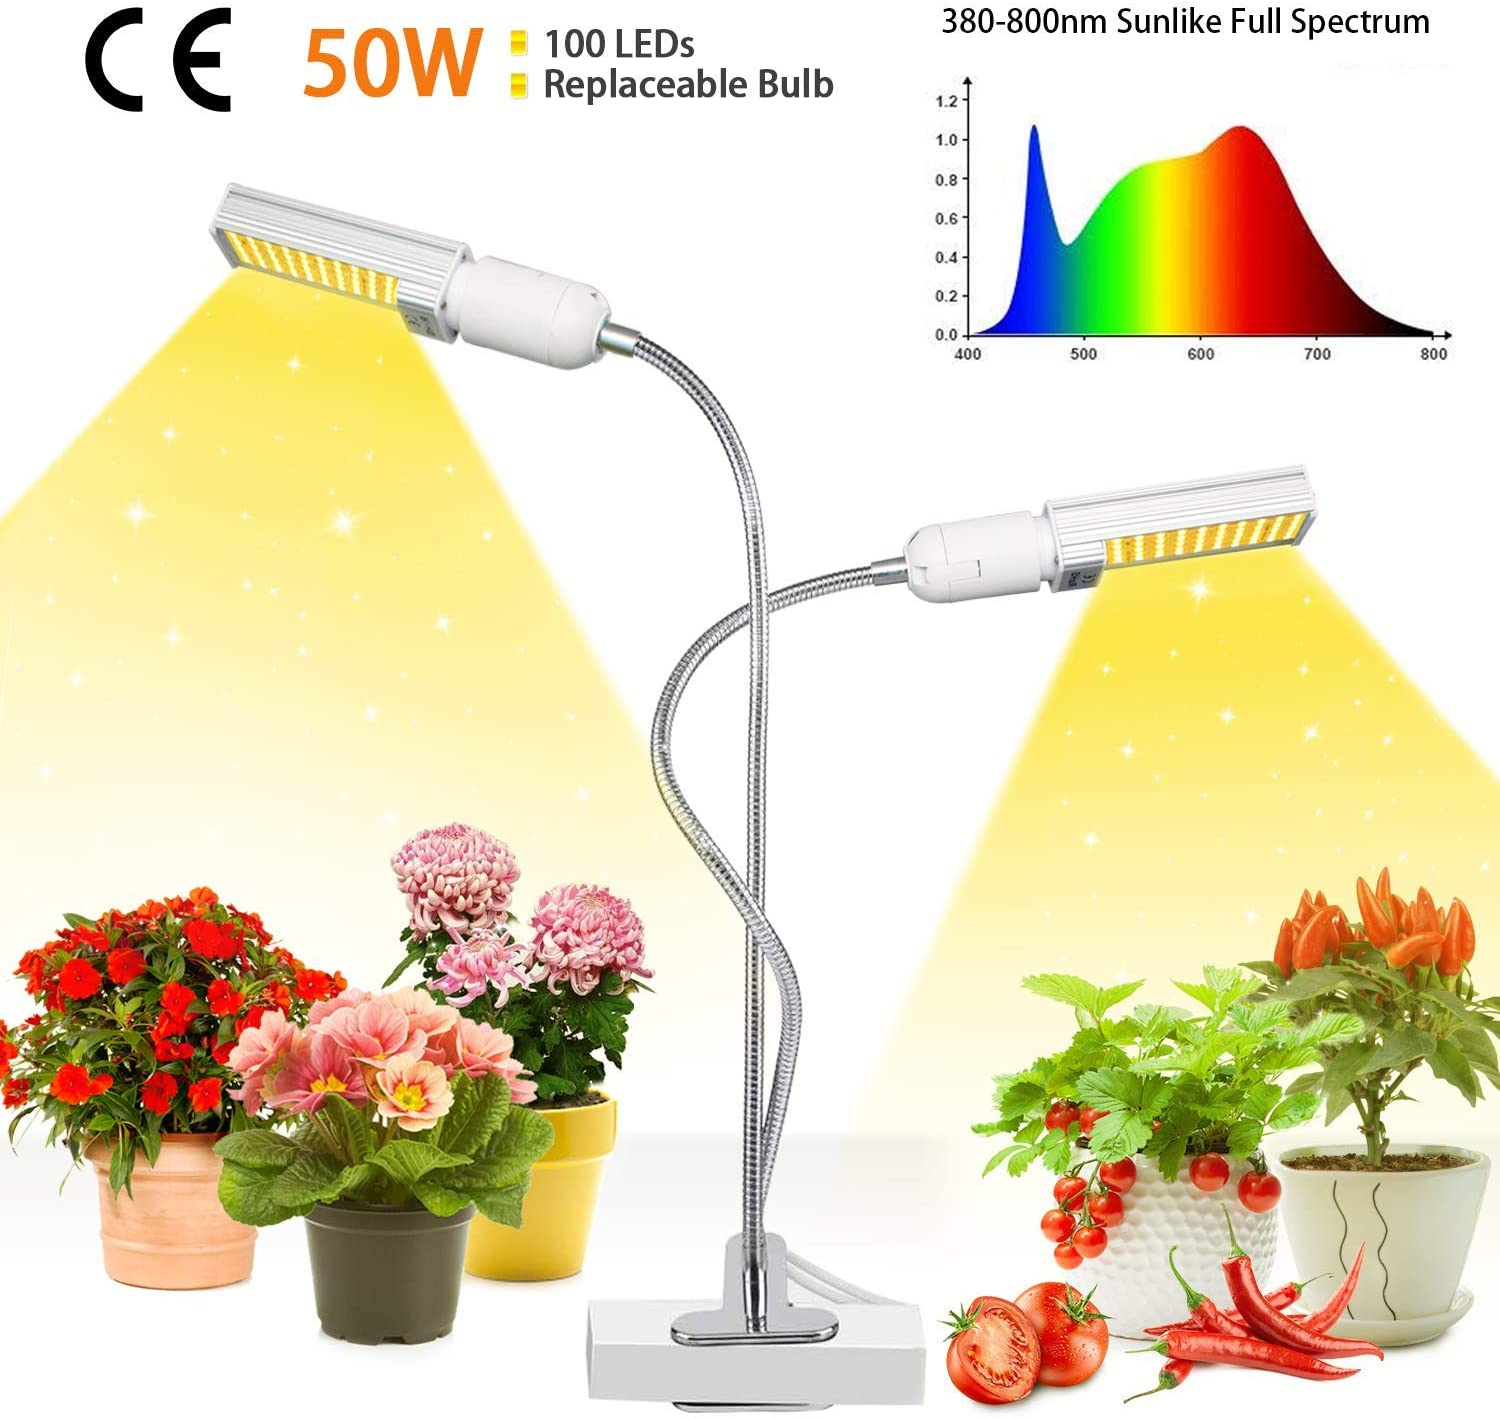 50w LED Plant Light, 100 LED Super Bright Sunlike Full Spectrum Grow Bulb para plantas de interior, Plant Grow Lamp with Reemplazable E27 / E26 Bulb, perfecto para plántulas Florecimiento de frutas